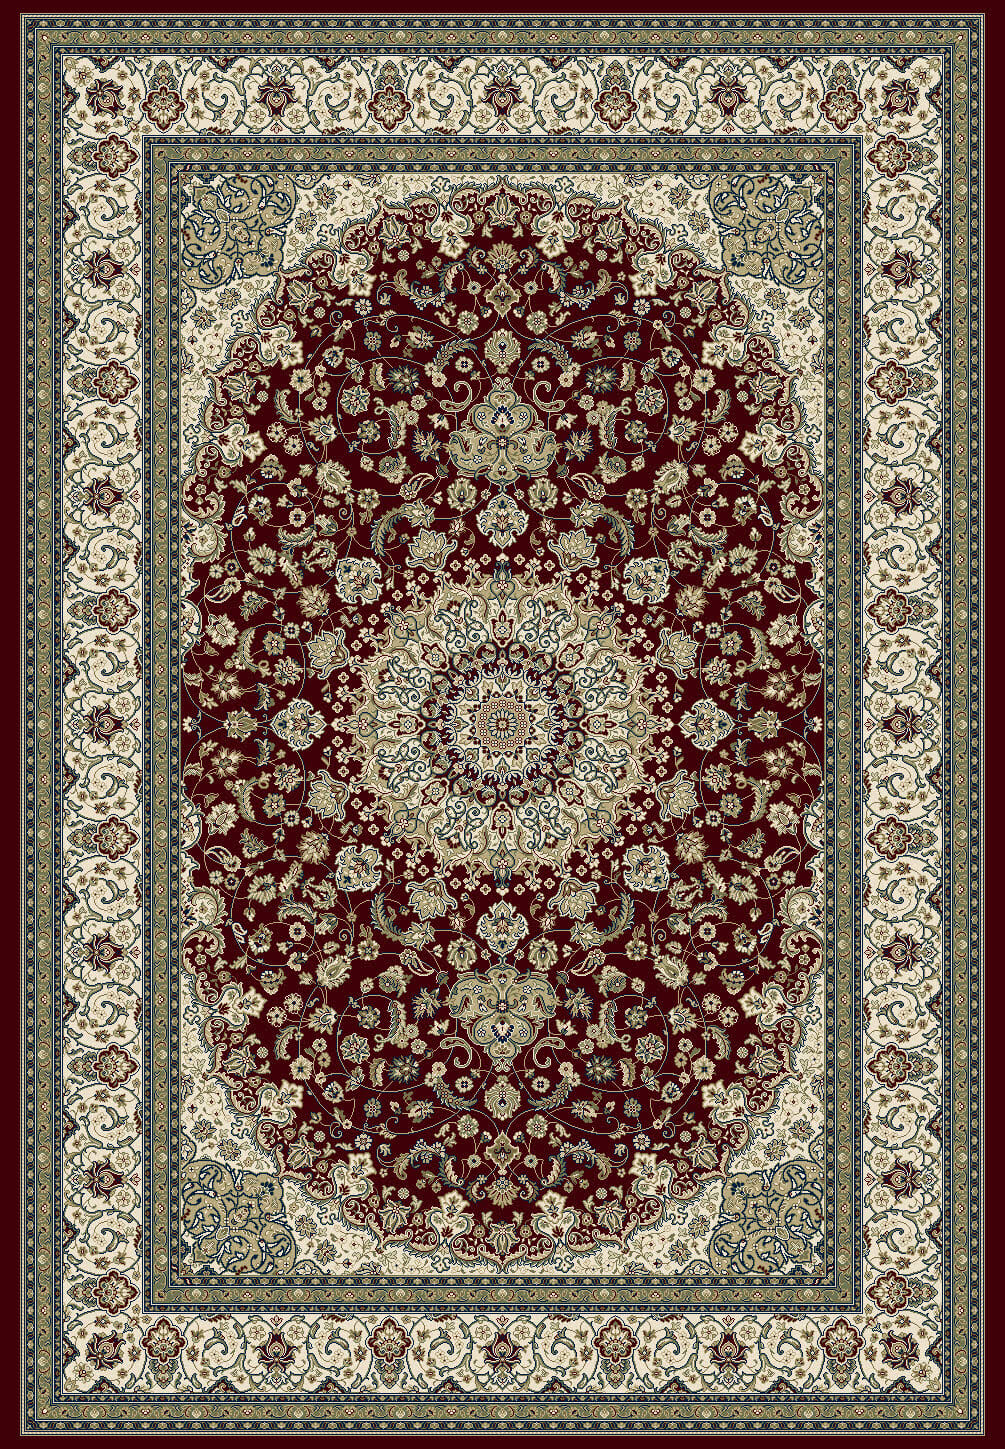 traditional-rugs-classic-medallion-red-large-floor-rugs-da-vinci